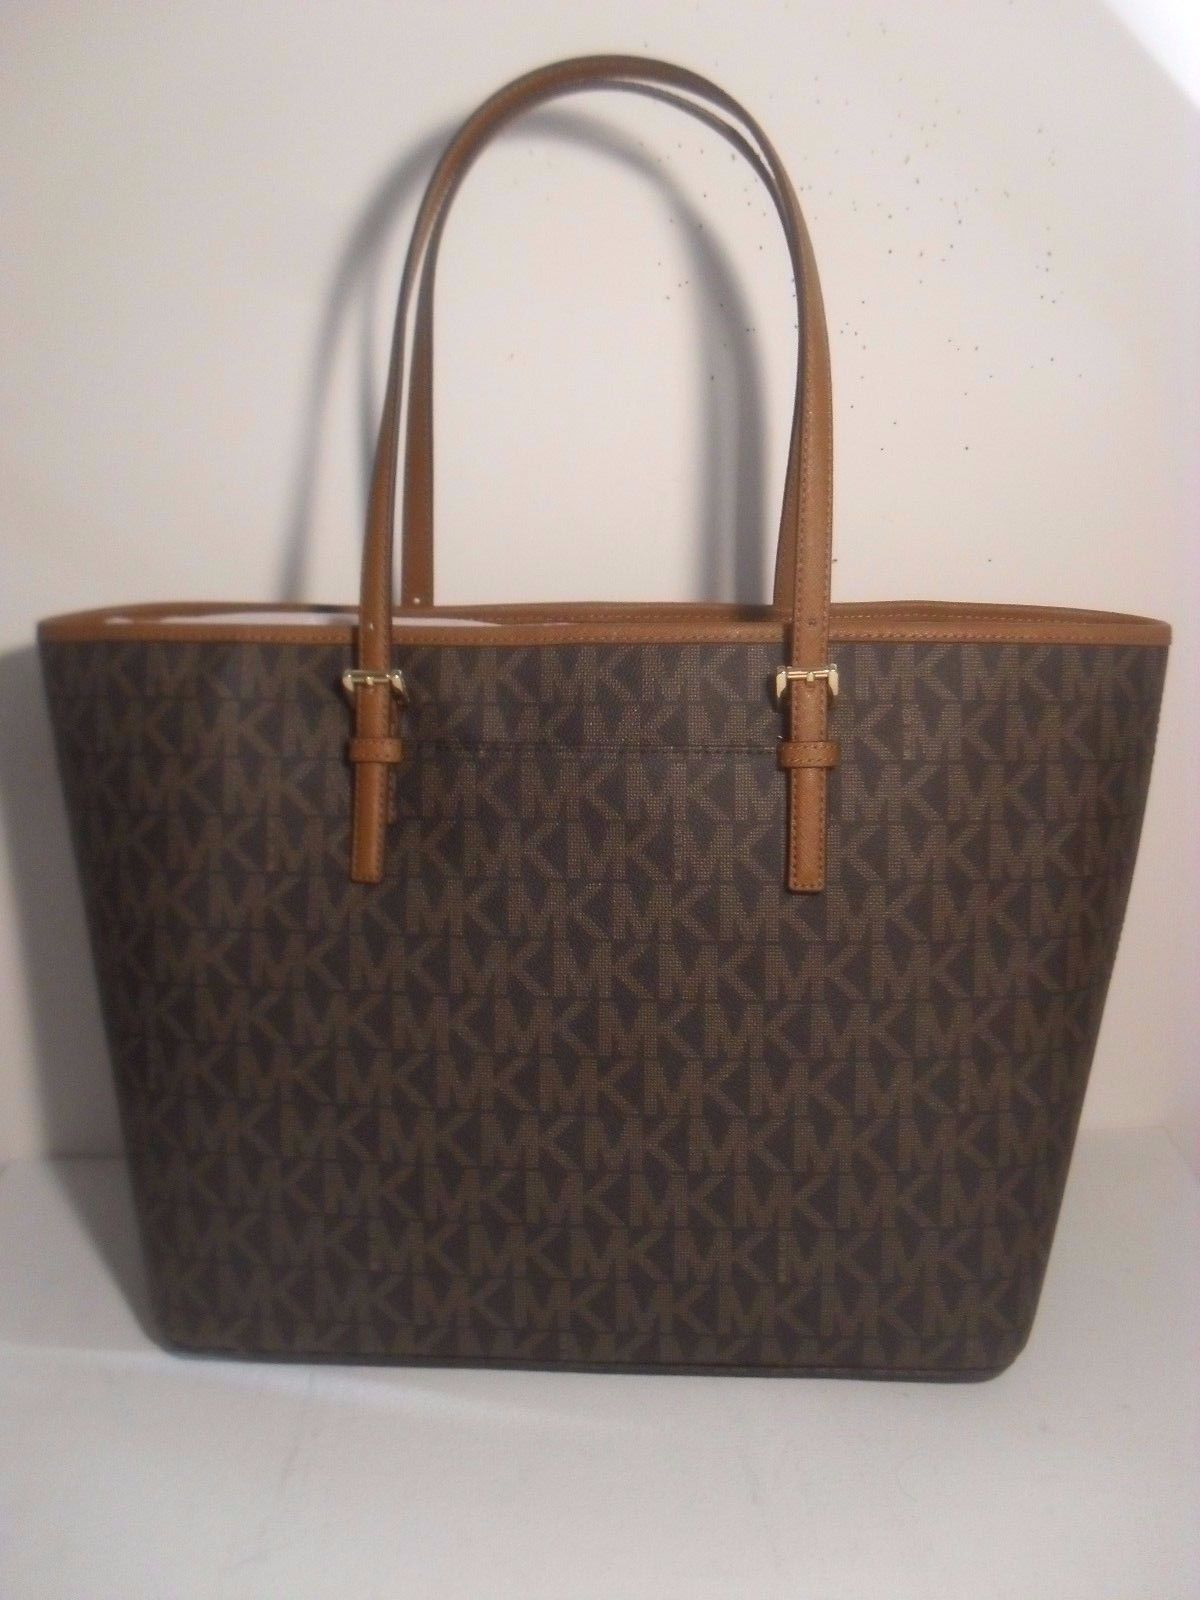 34017d33a4a27 NWT Michael Kors Jet Set Brown MK Signature Carryall PVC Large Tote Shopper  Bag  129.95